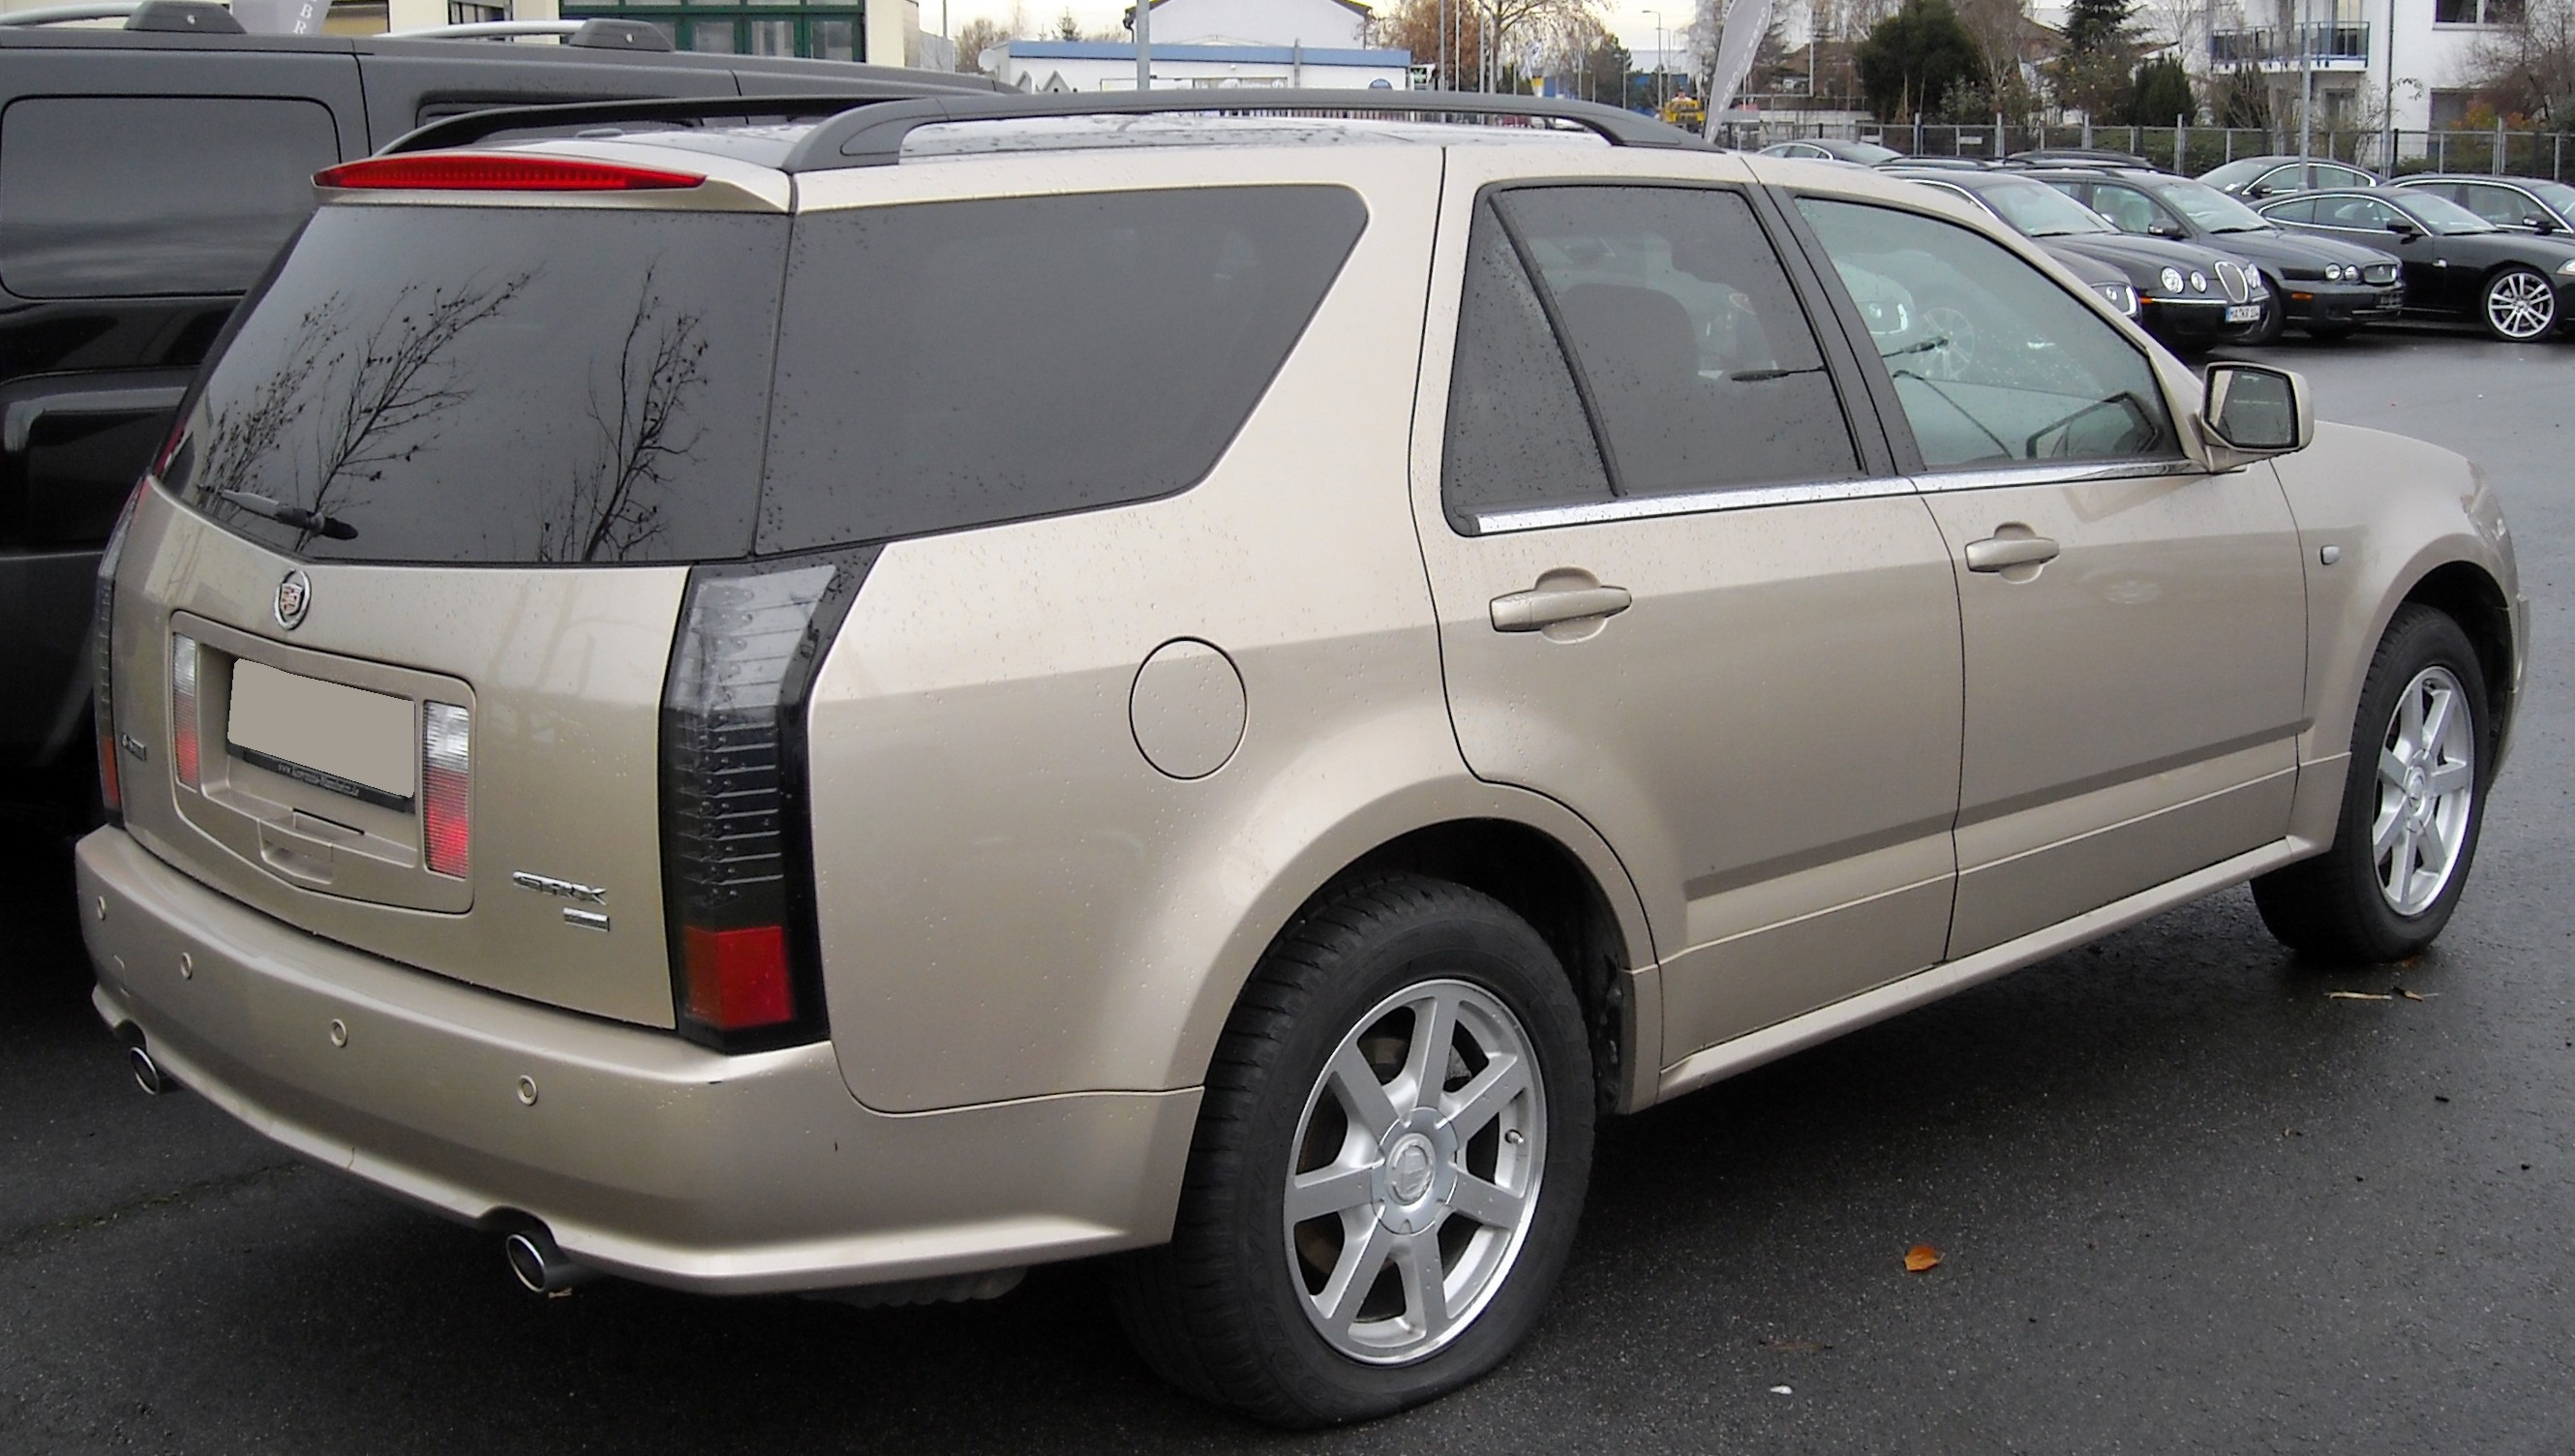 File:Cadillac SRX rear 20081204.jpg - Wikipedia